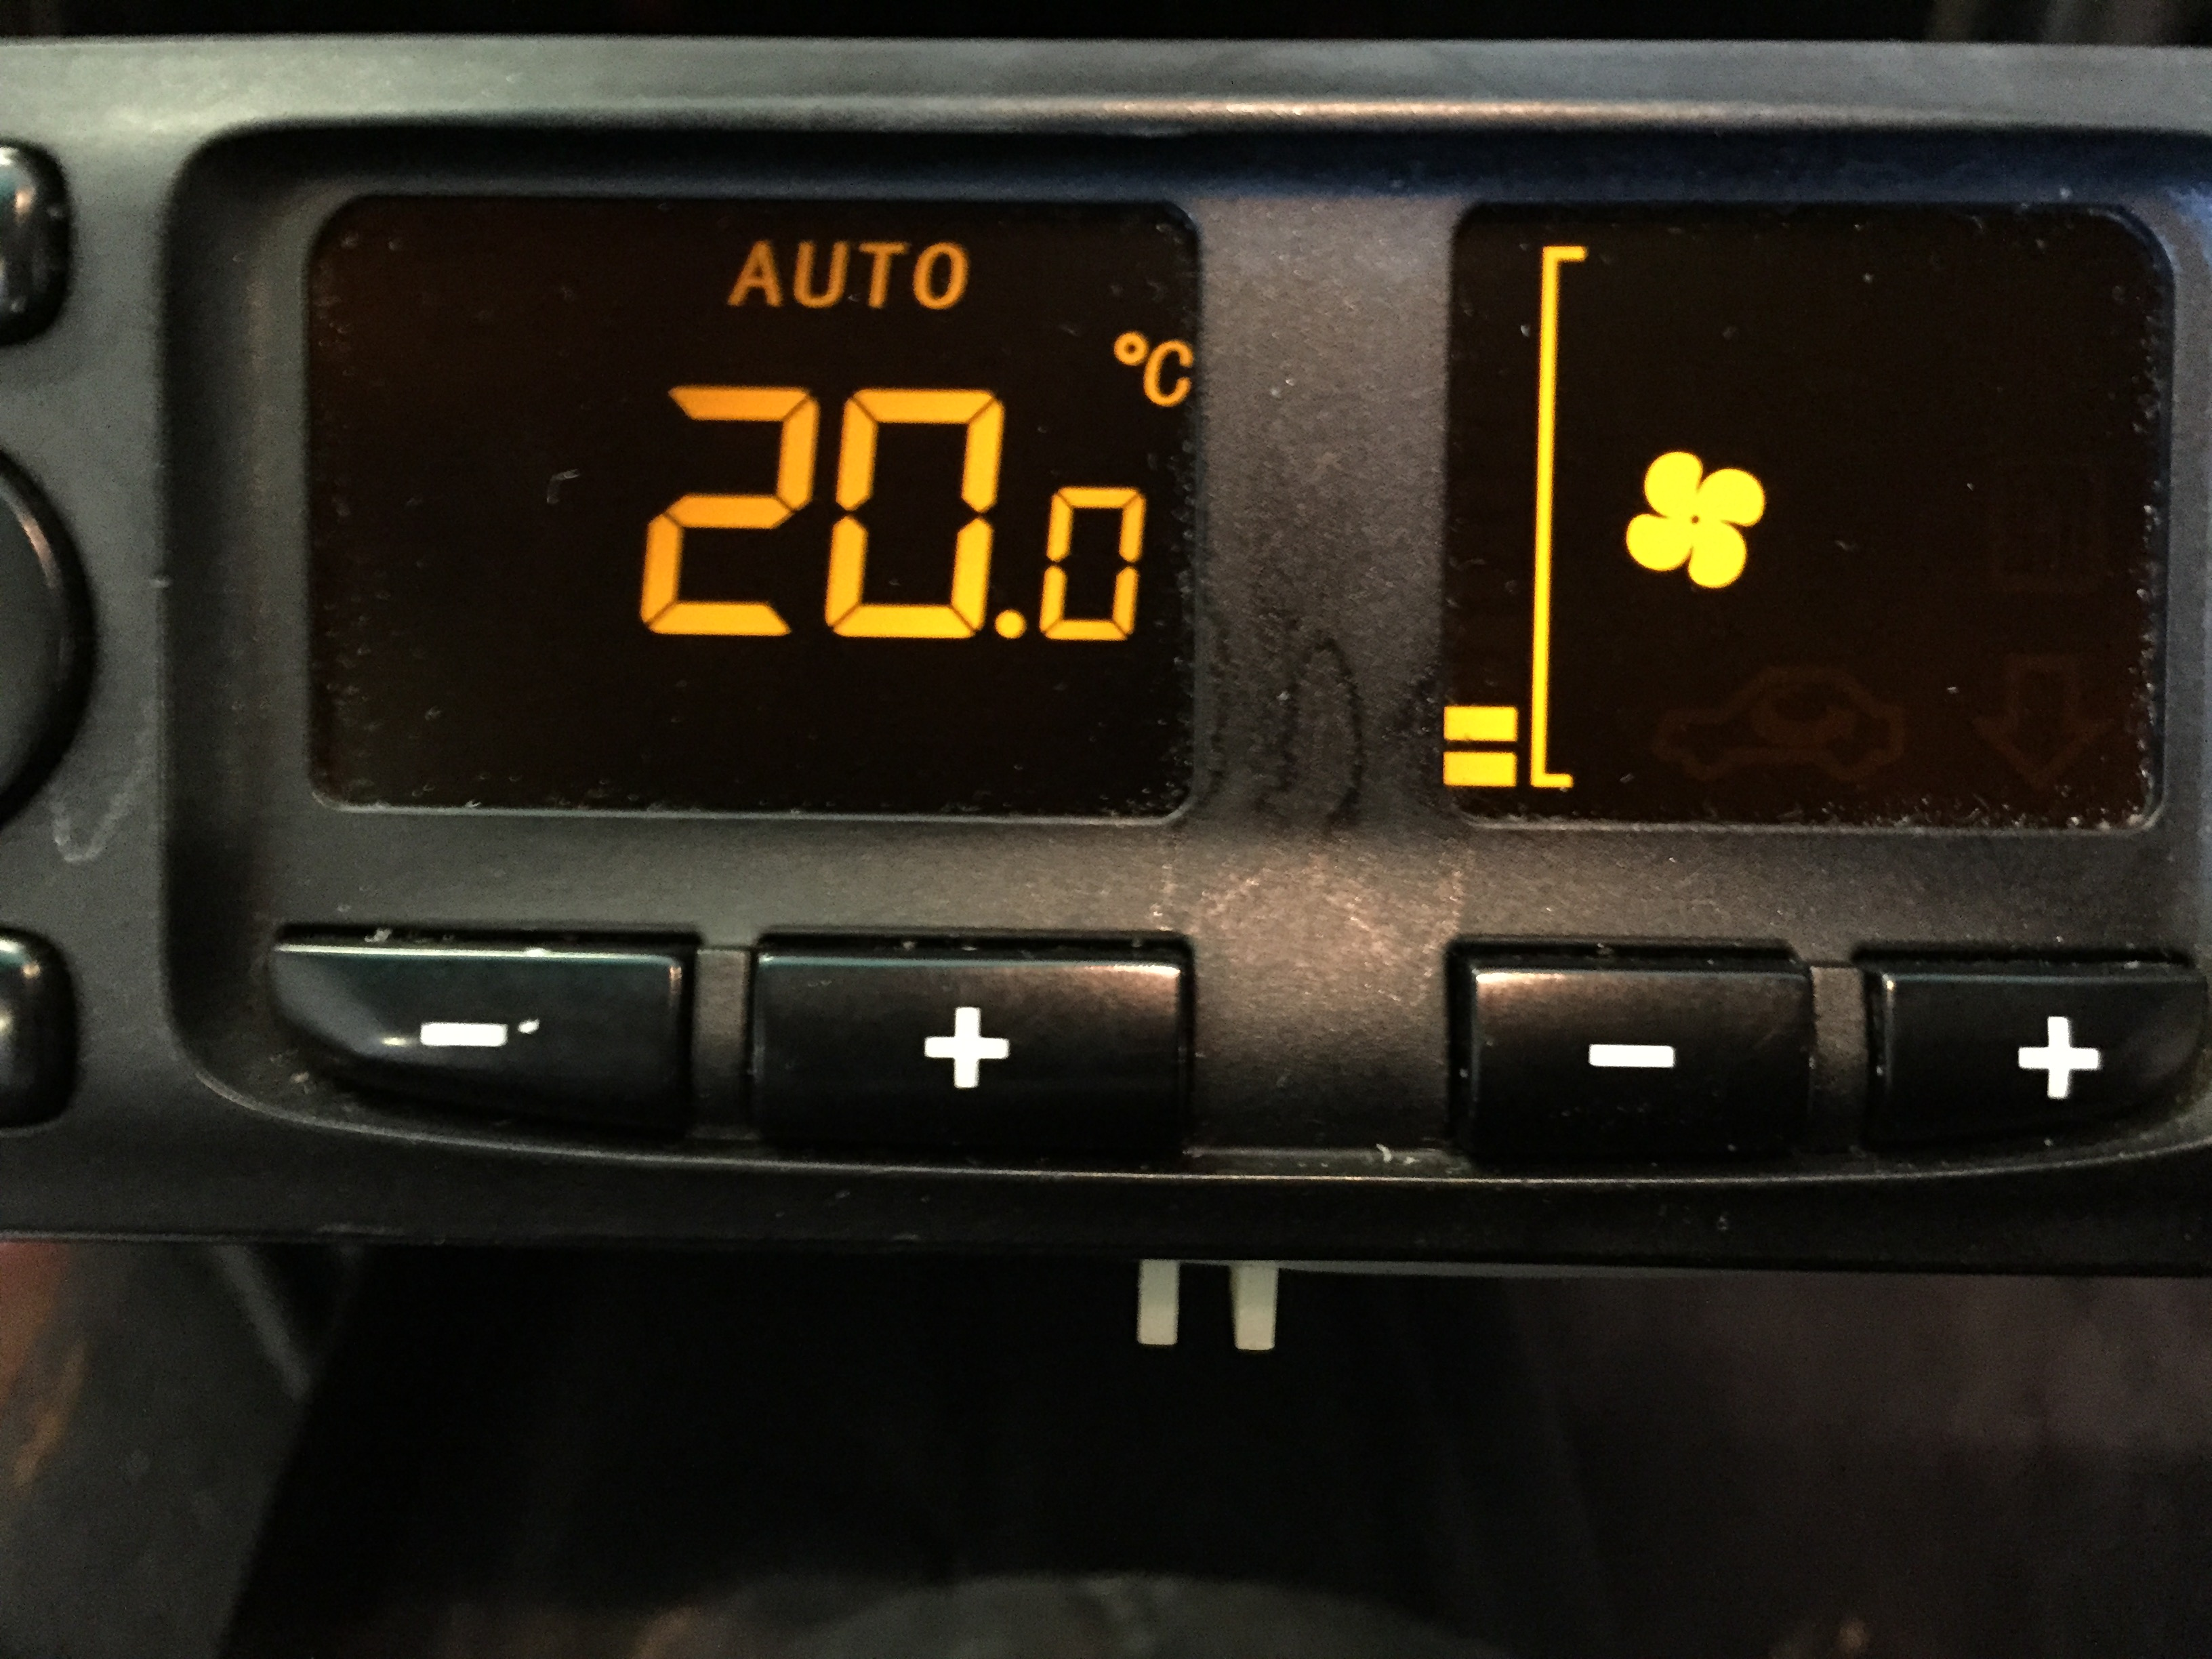 Fixing a Porsche 996 and Boxster climate control LCD display